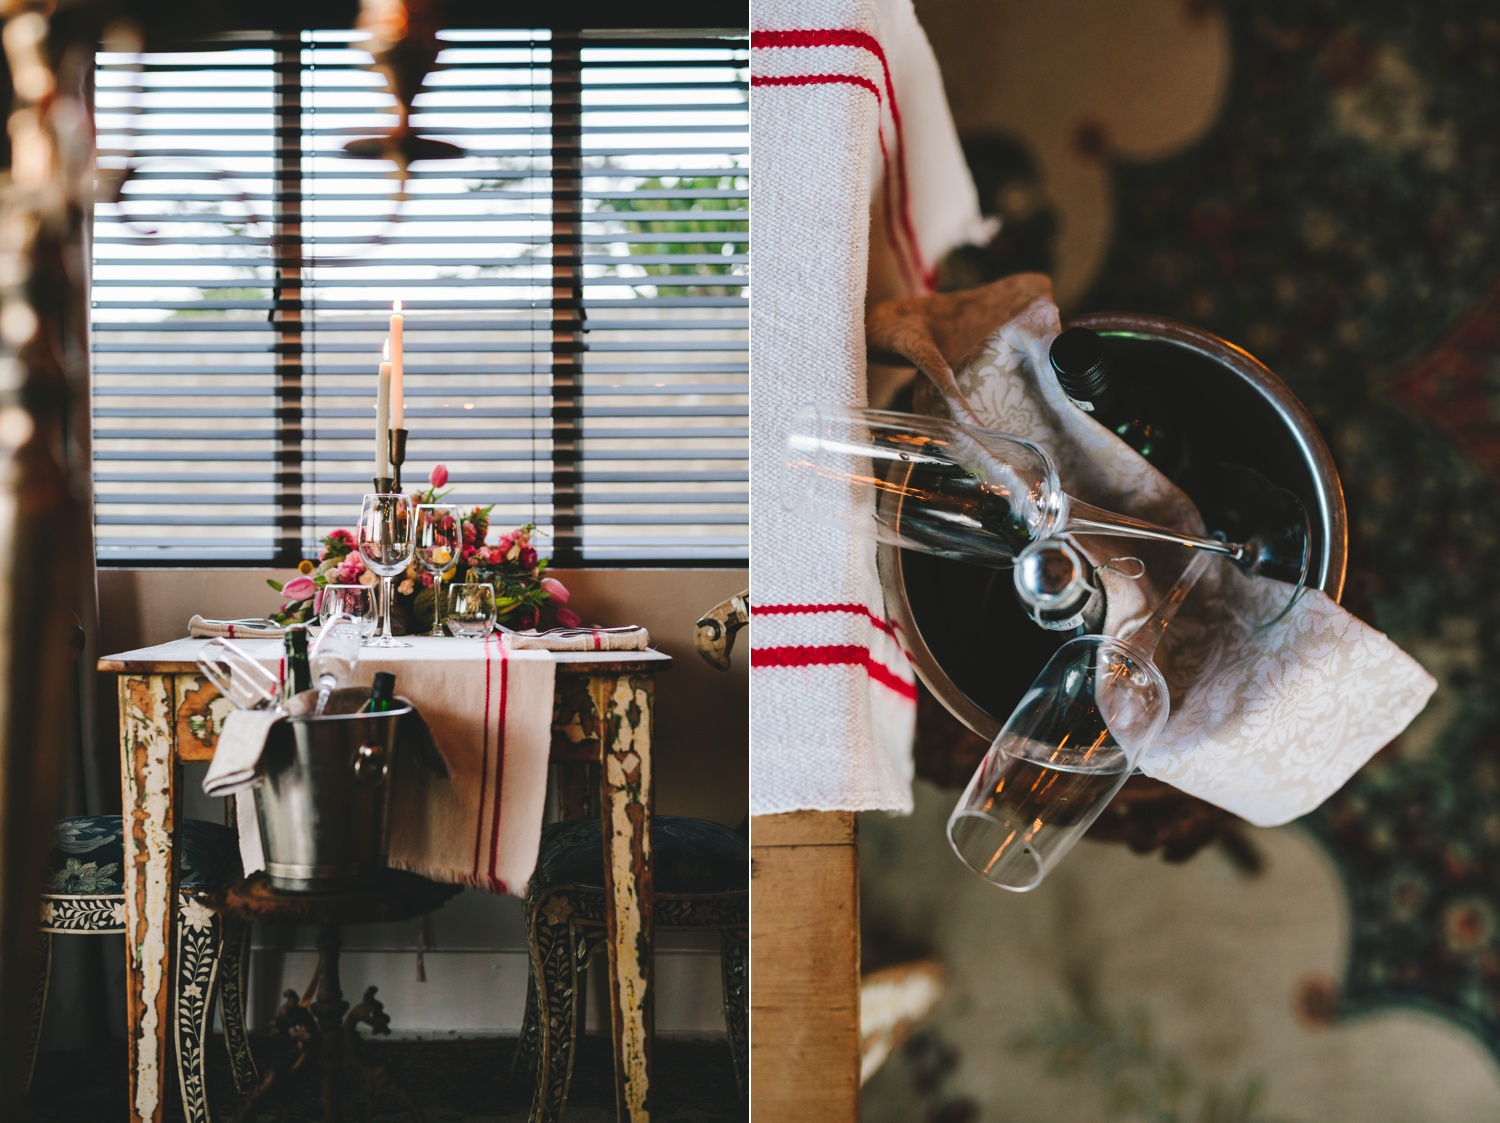 charlie_ray_photography_runaway_romance_elopement_emily_moon_plett_simple_boho_wedding_south_africa_bohemium_0111.jpg